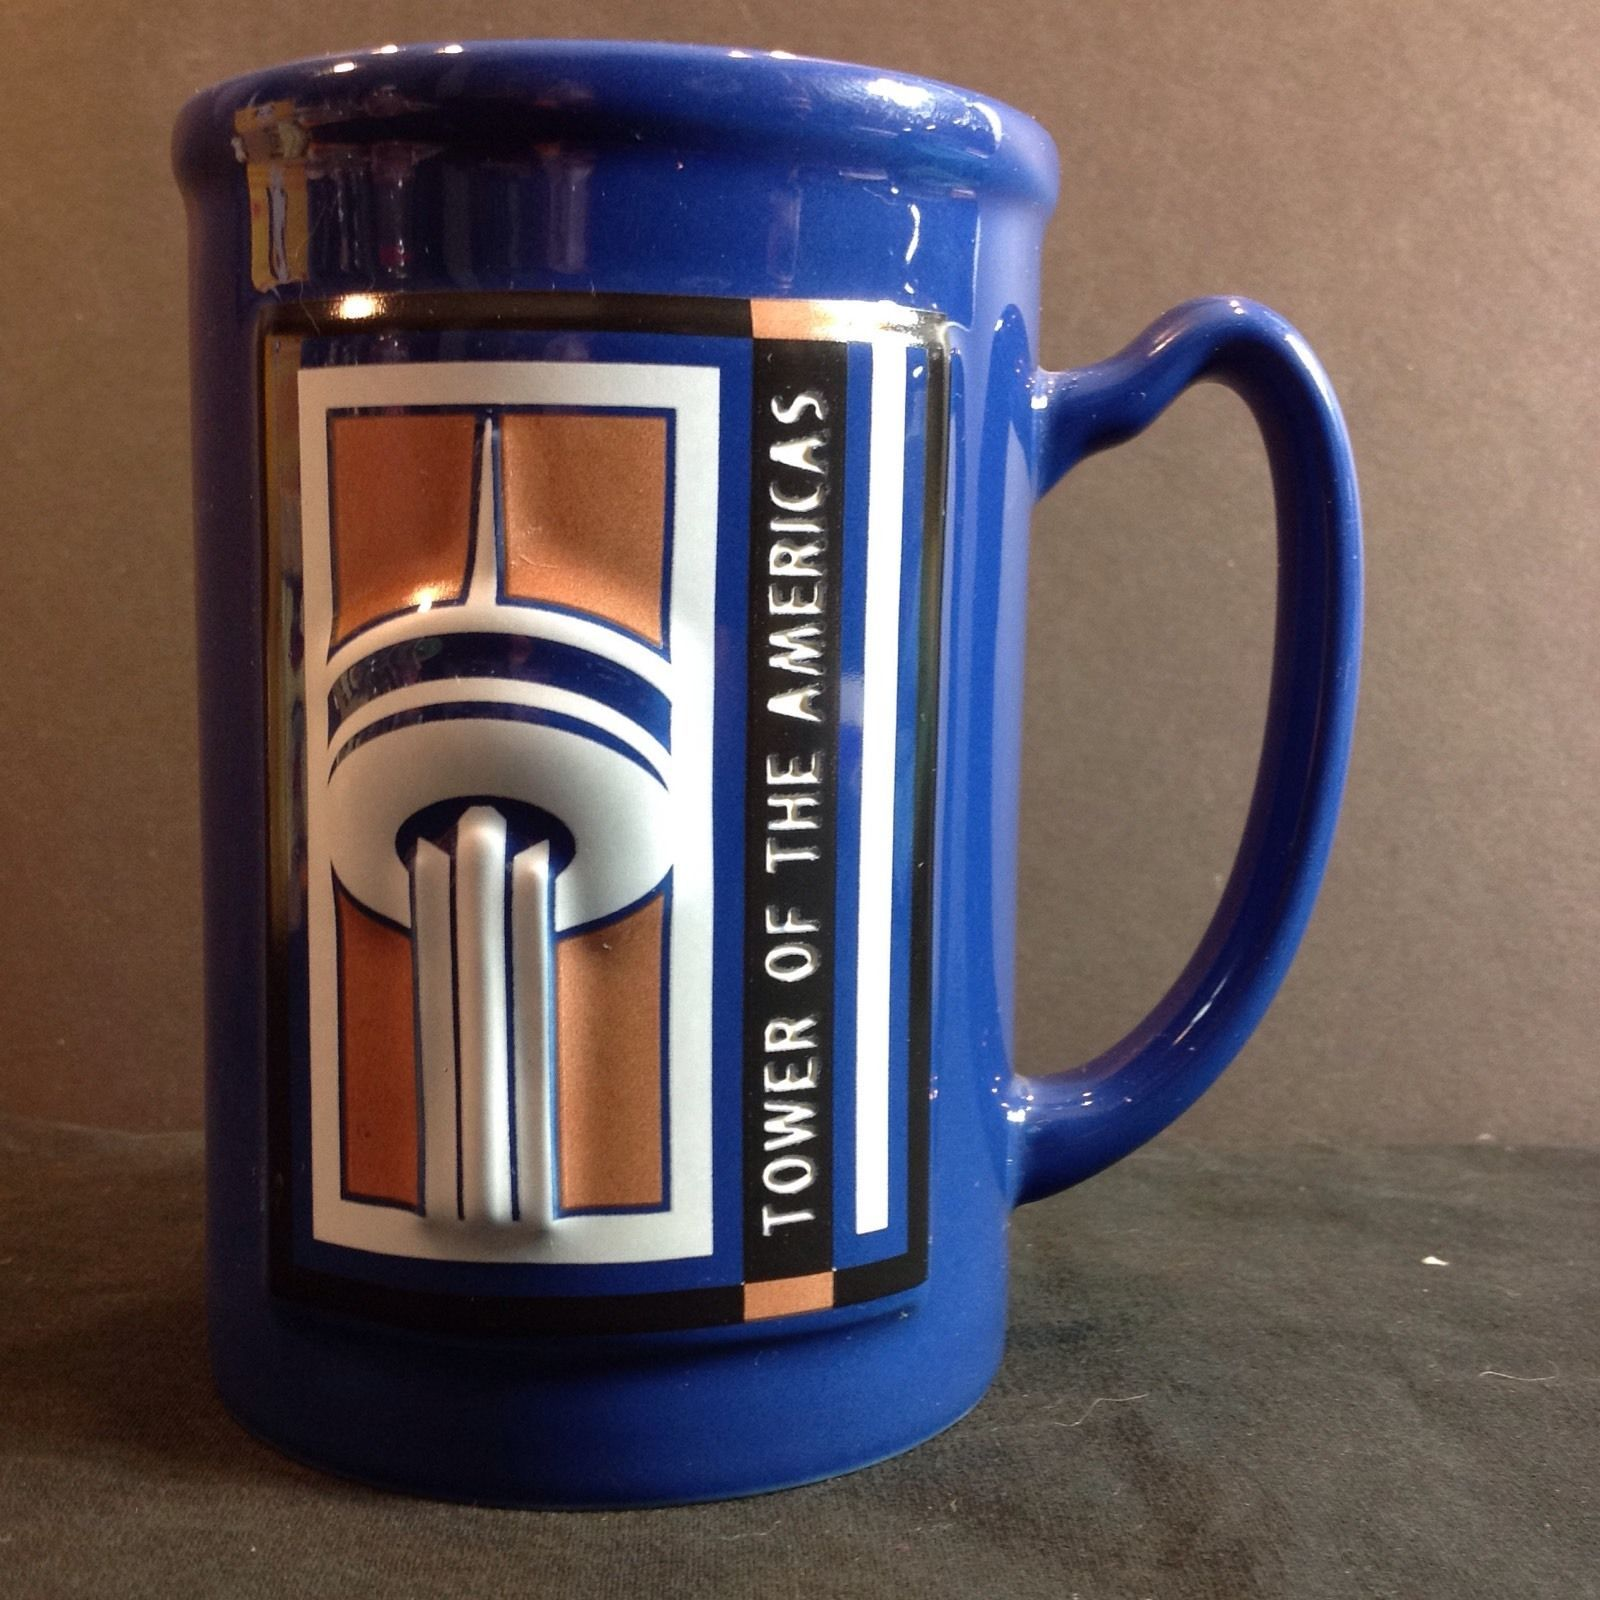 Primary image for Tower of the Americas Tall Mug Landry's Restaurants, Inc. Cup Blue